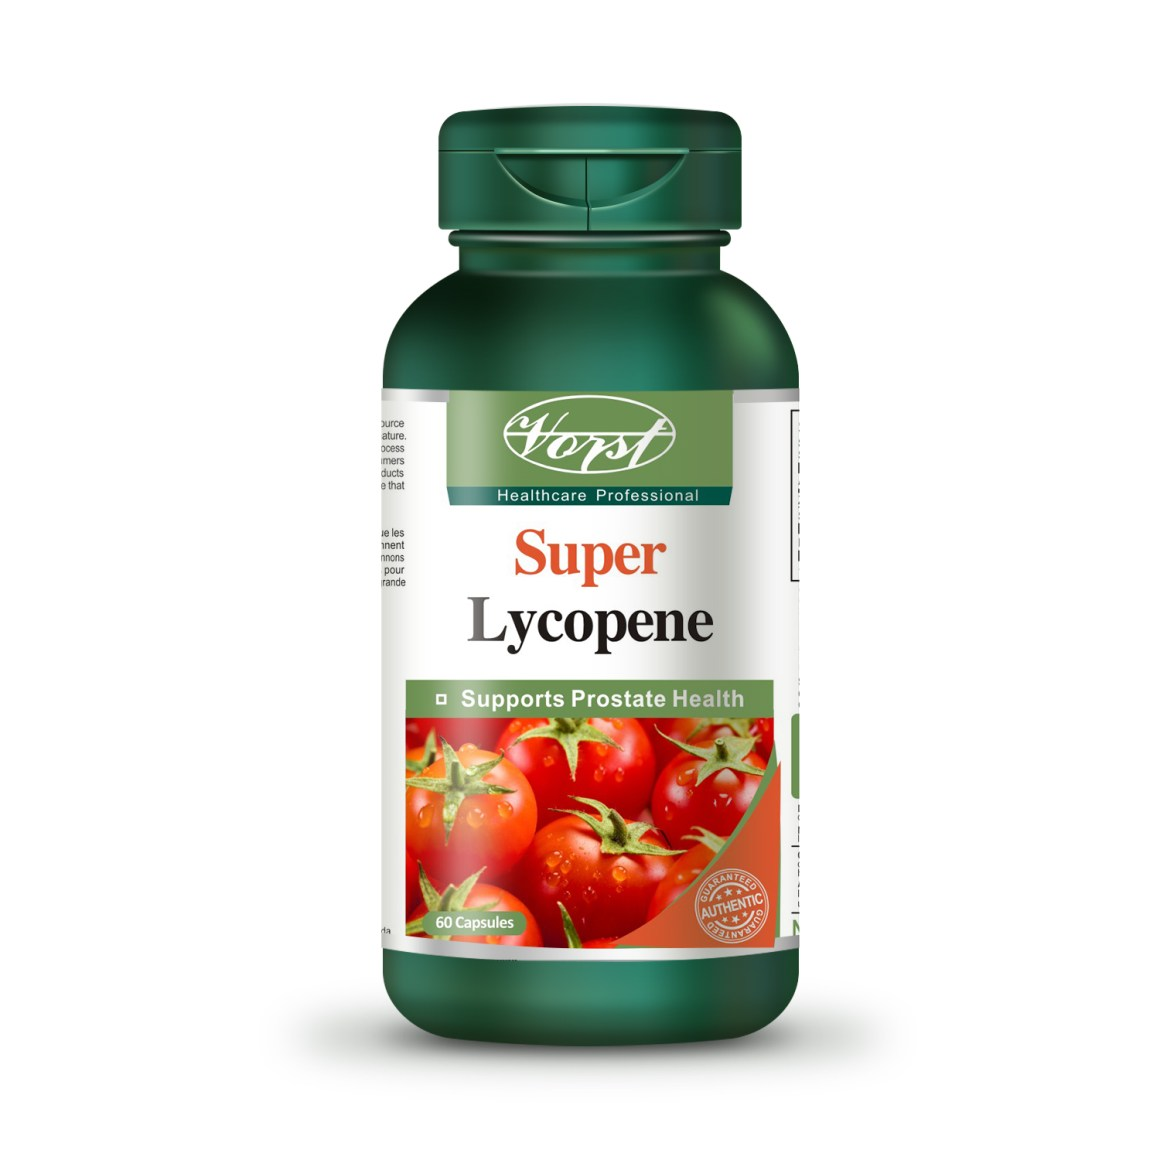 Super Lycopene